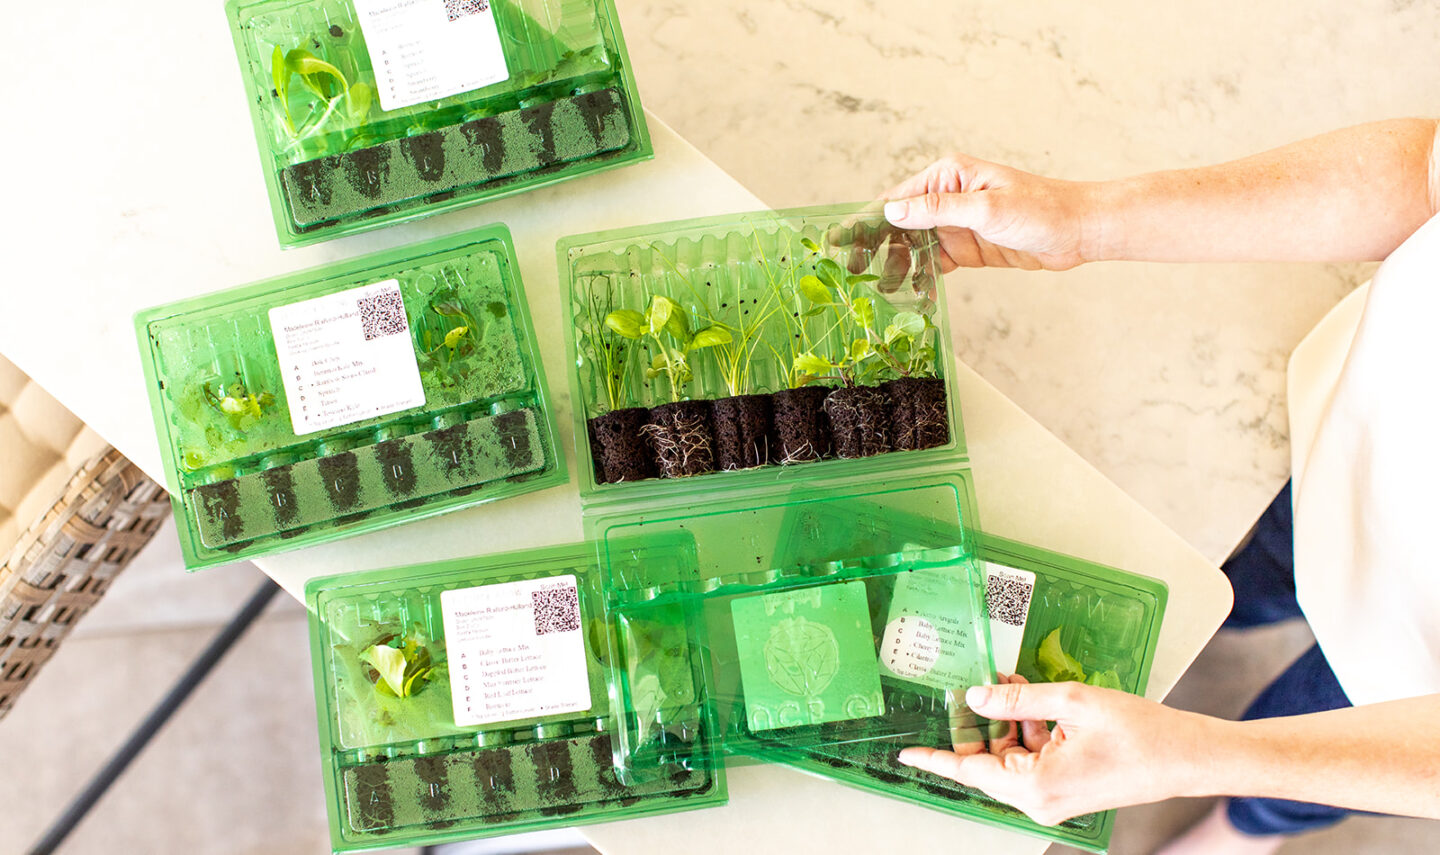 easy hydroponic garden, featured by top Atlanta lifestyle blogger, Moderately High Maintenance | Hydroponic Garden by popular Atlanta lifestyle blog, Moderately High Maintenance: image of seedlings in green plastic containers.